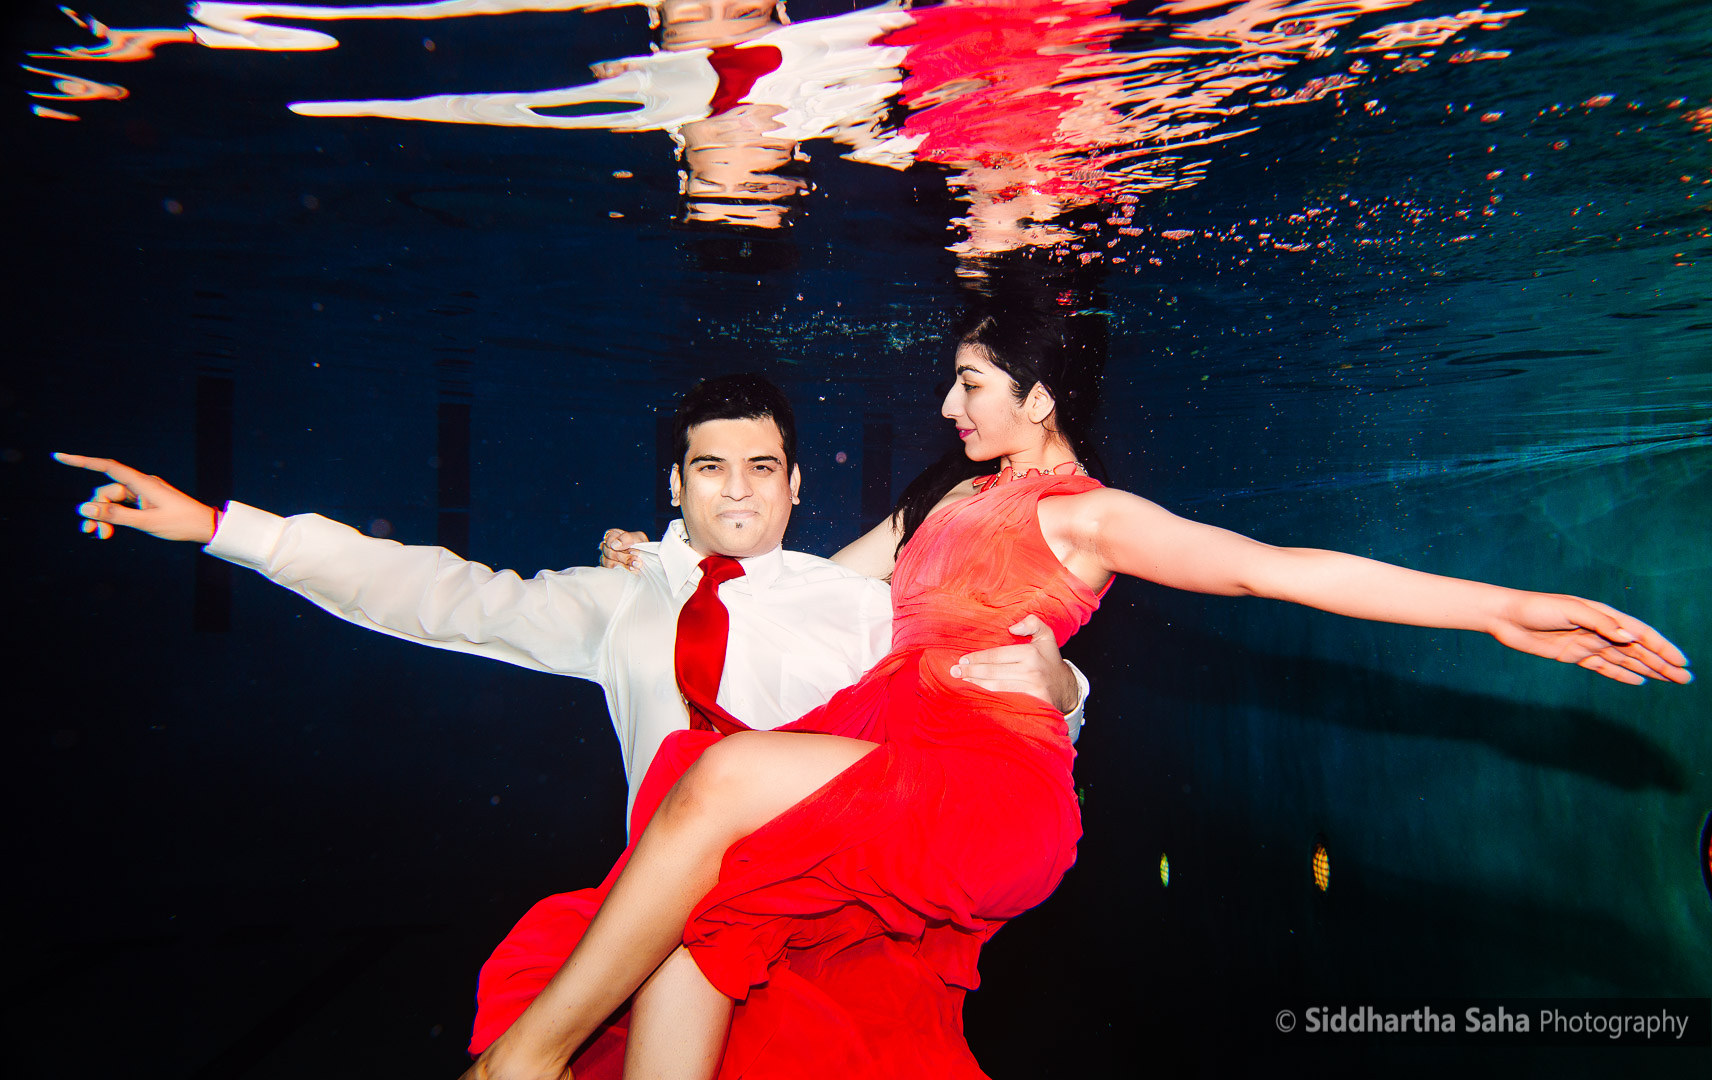 2015-04-12 - Saloni Vaibhav Underwater Shoot - _O5C4307-01